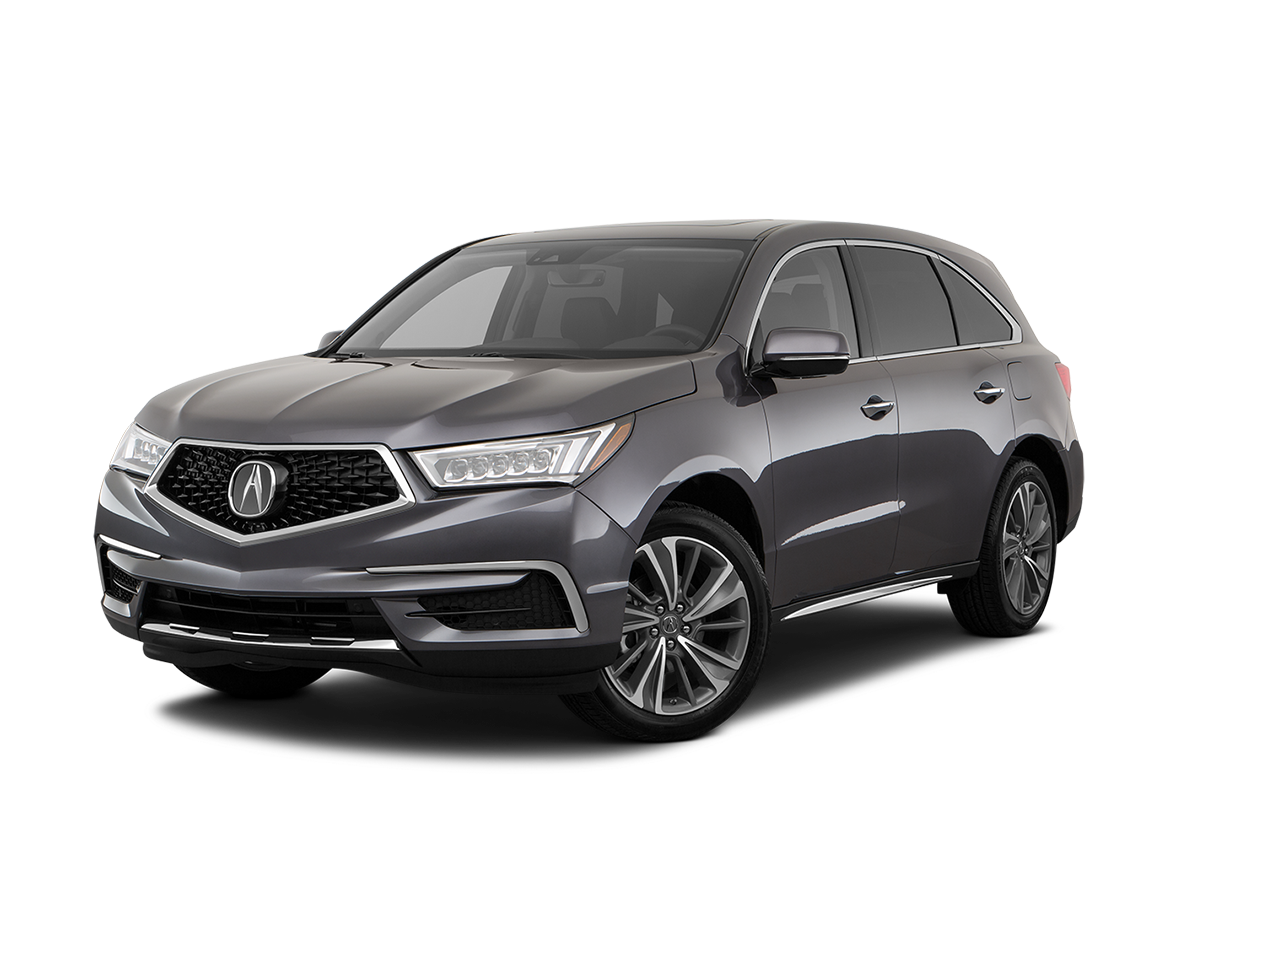 2019 MDX with Technology Package